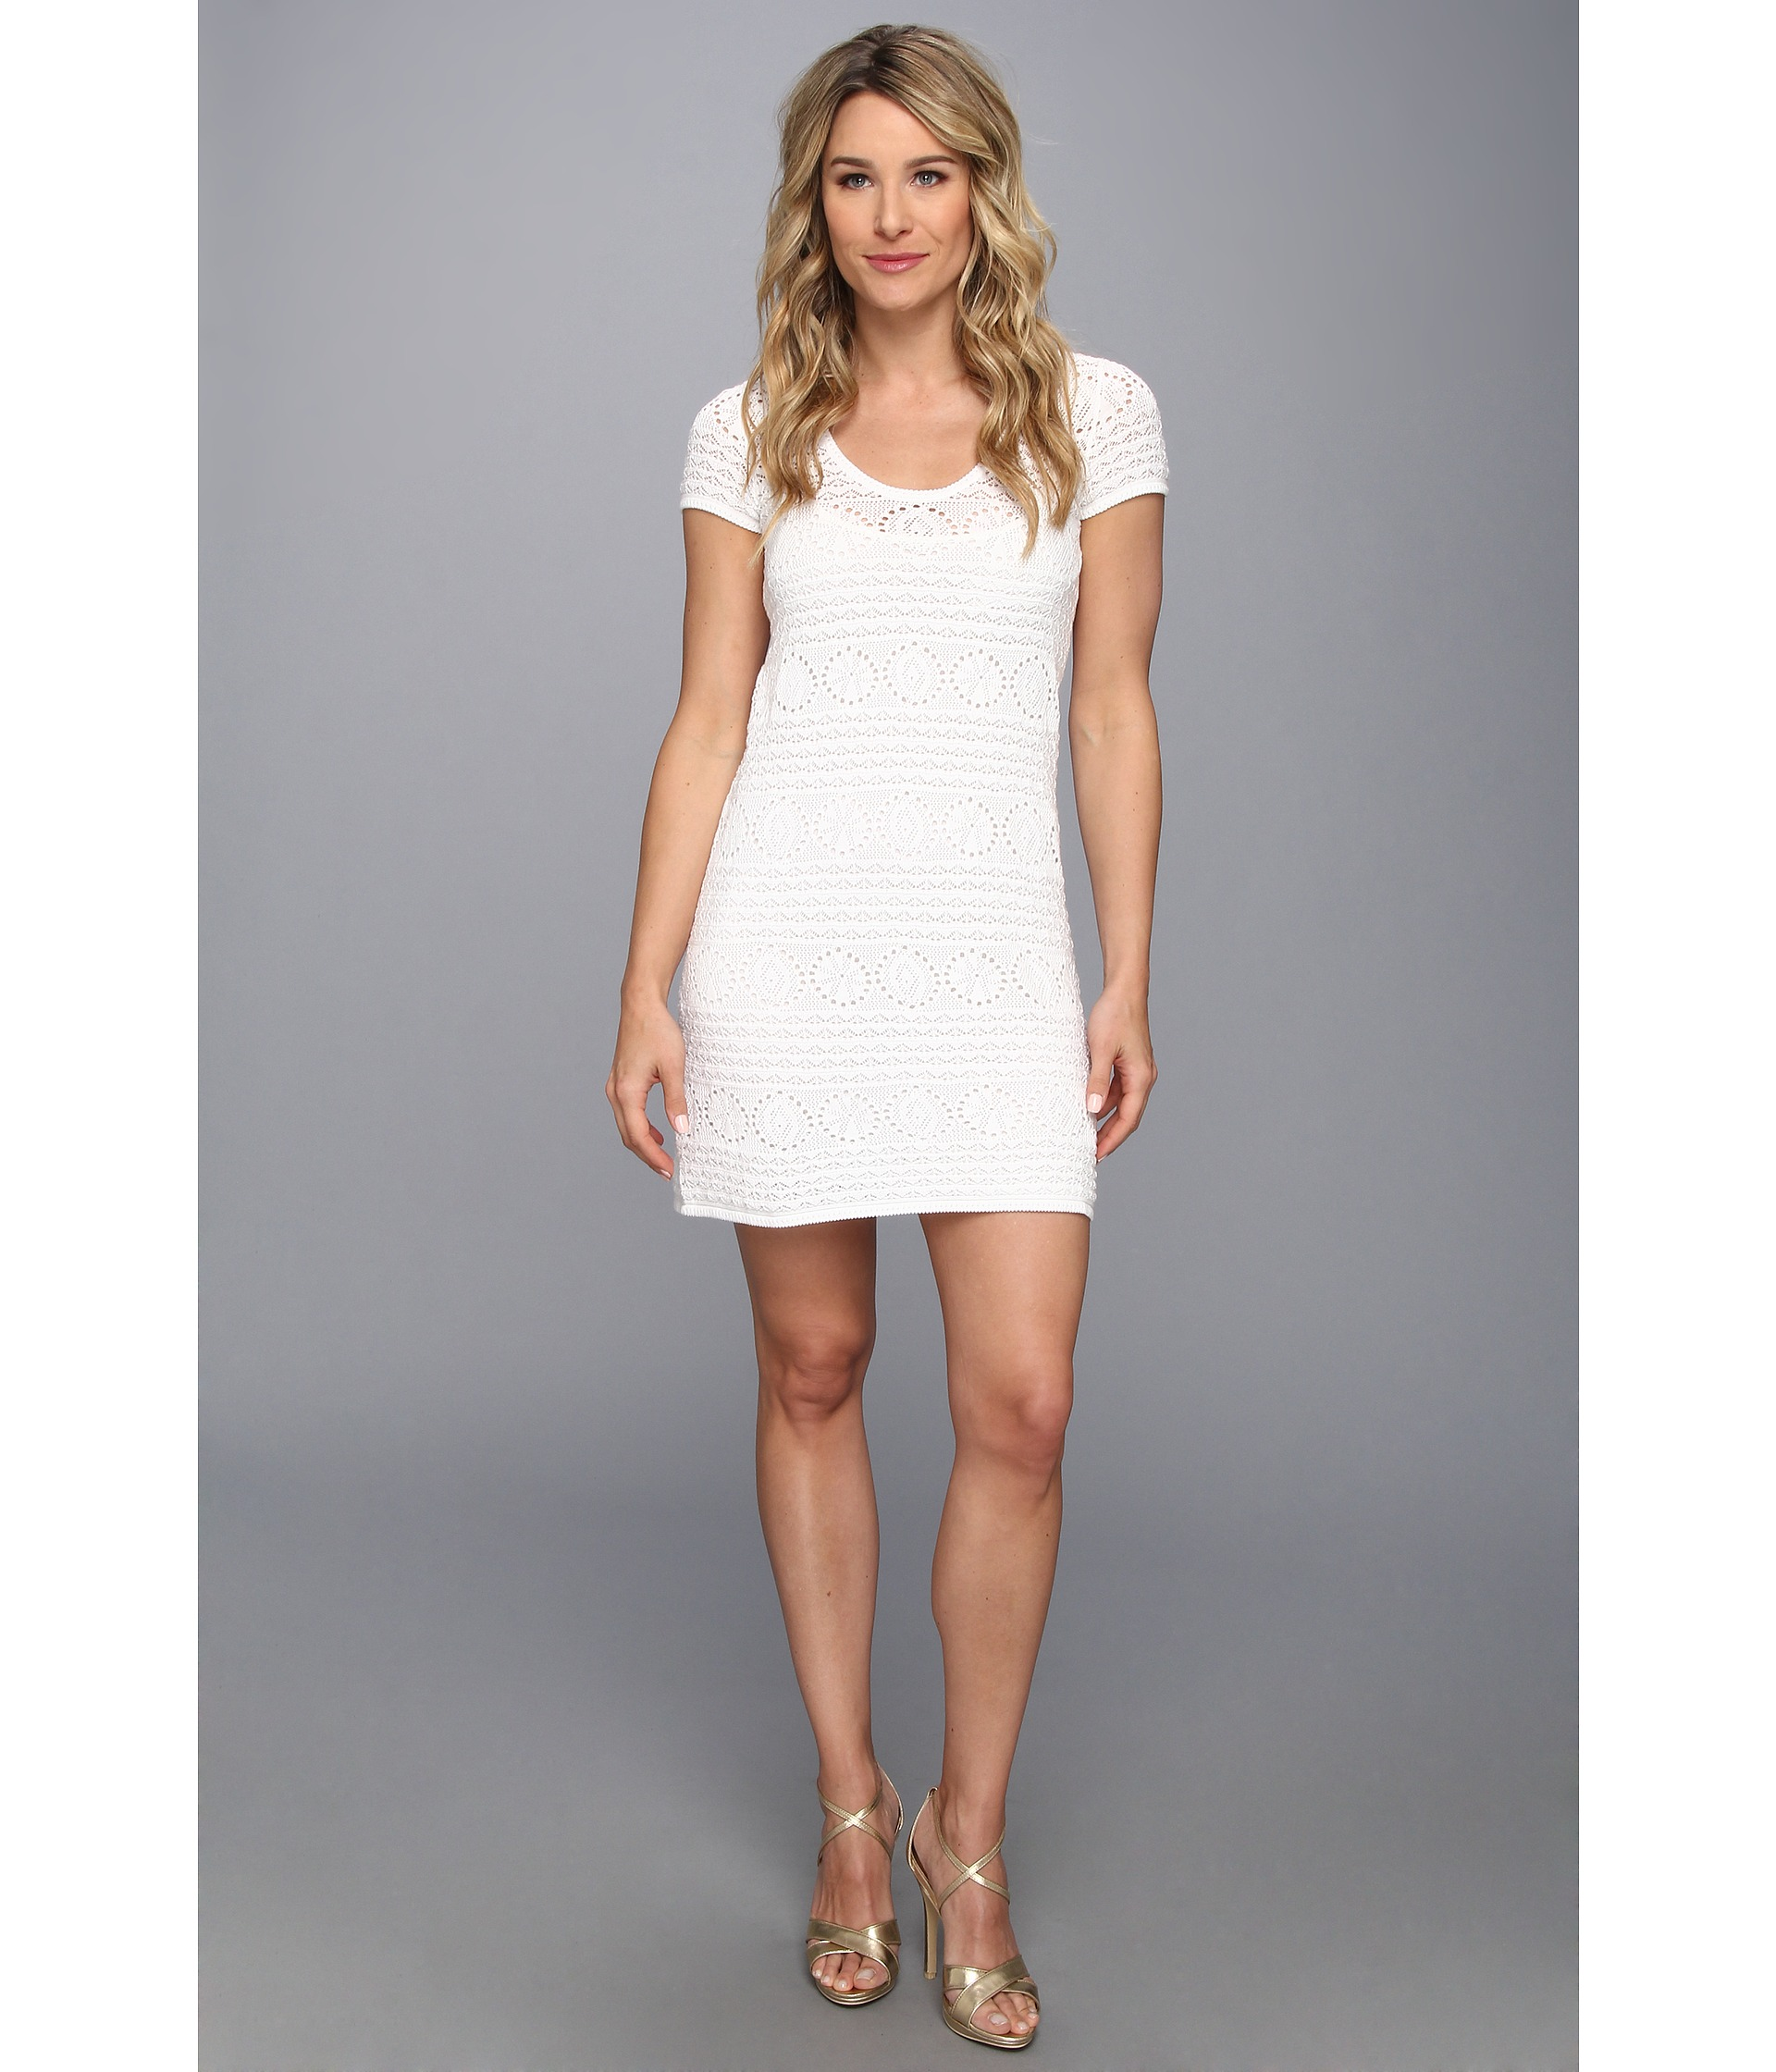 Lilly Pulitzer White Dresses On Sale Lilly Pulitzer Paulette